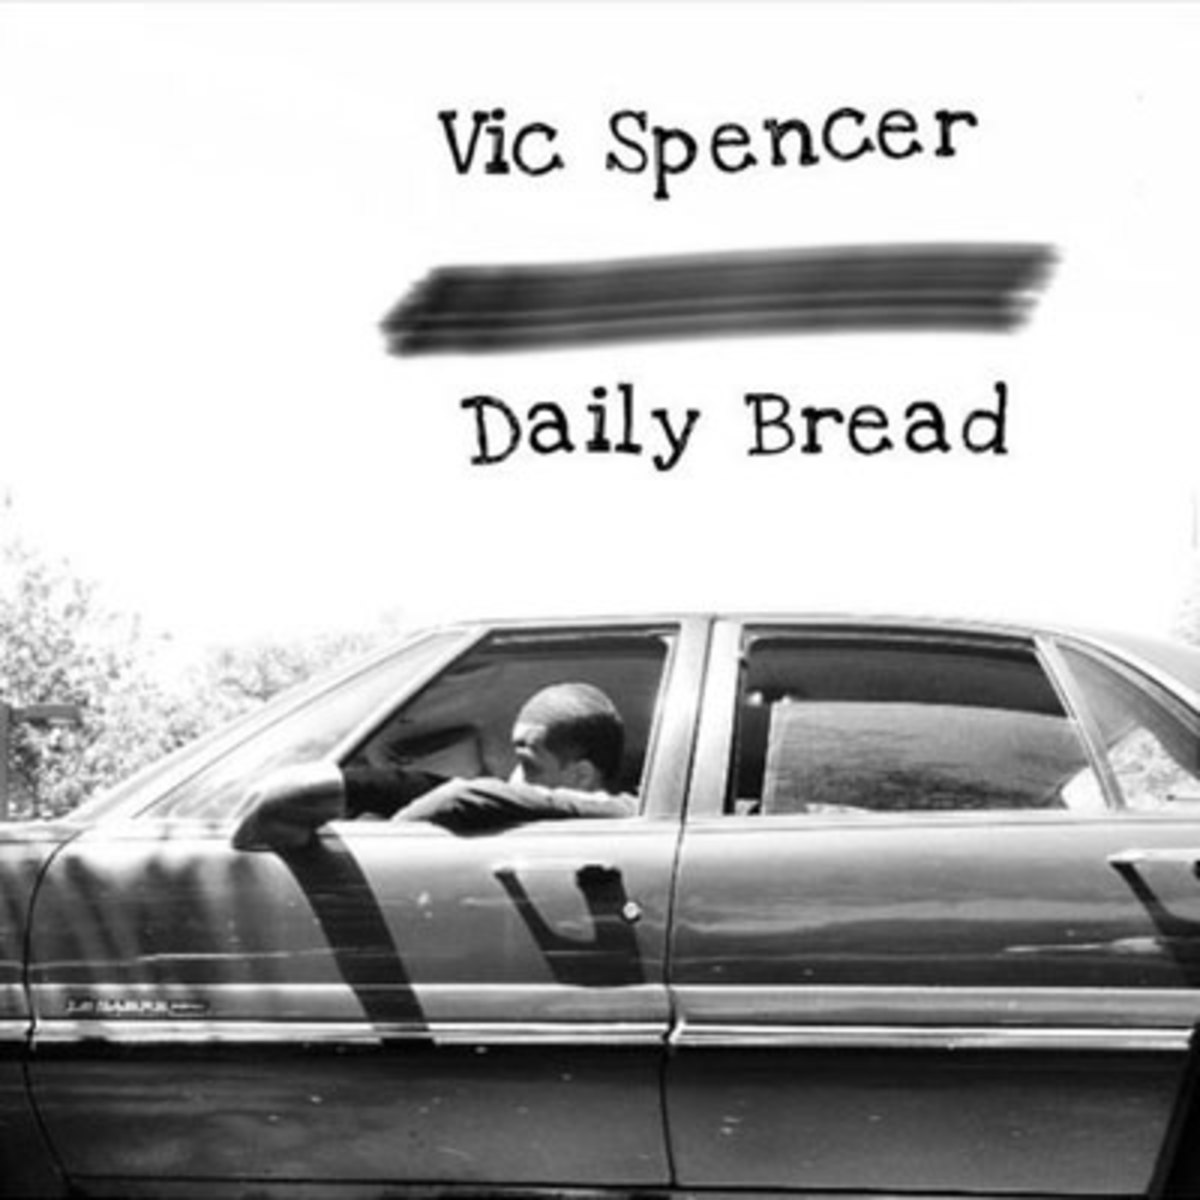 vicspencer-dailybread.jpg